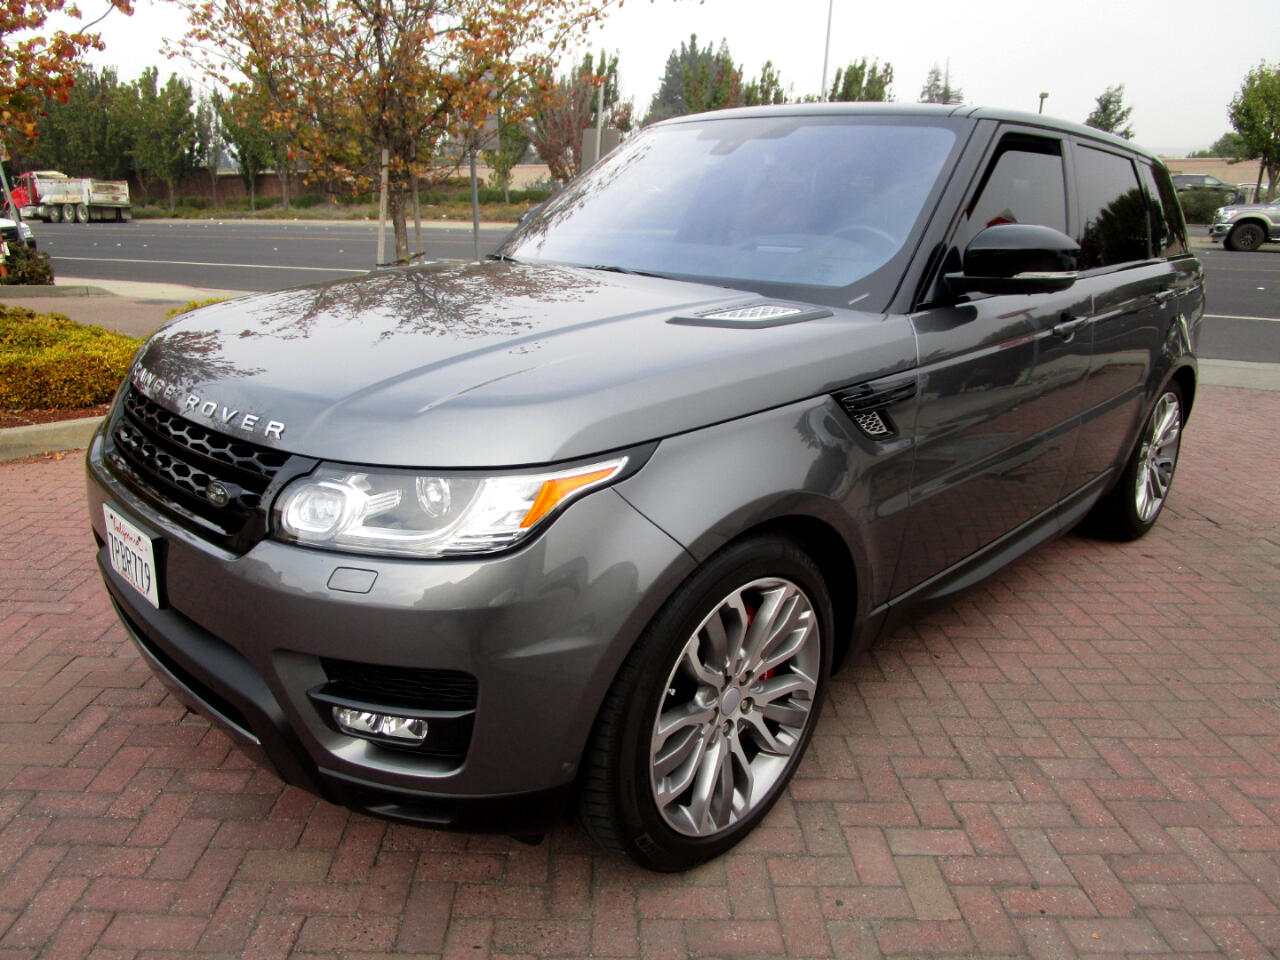 2016 Land Rover Range Rover Sport DYNAMIC S/C 5.0 V8 510HP*LUX SEATS*DRIVER ASSIST*H